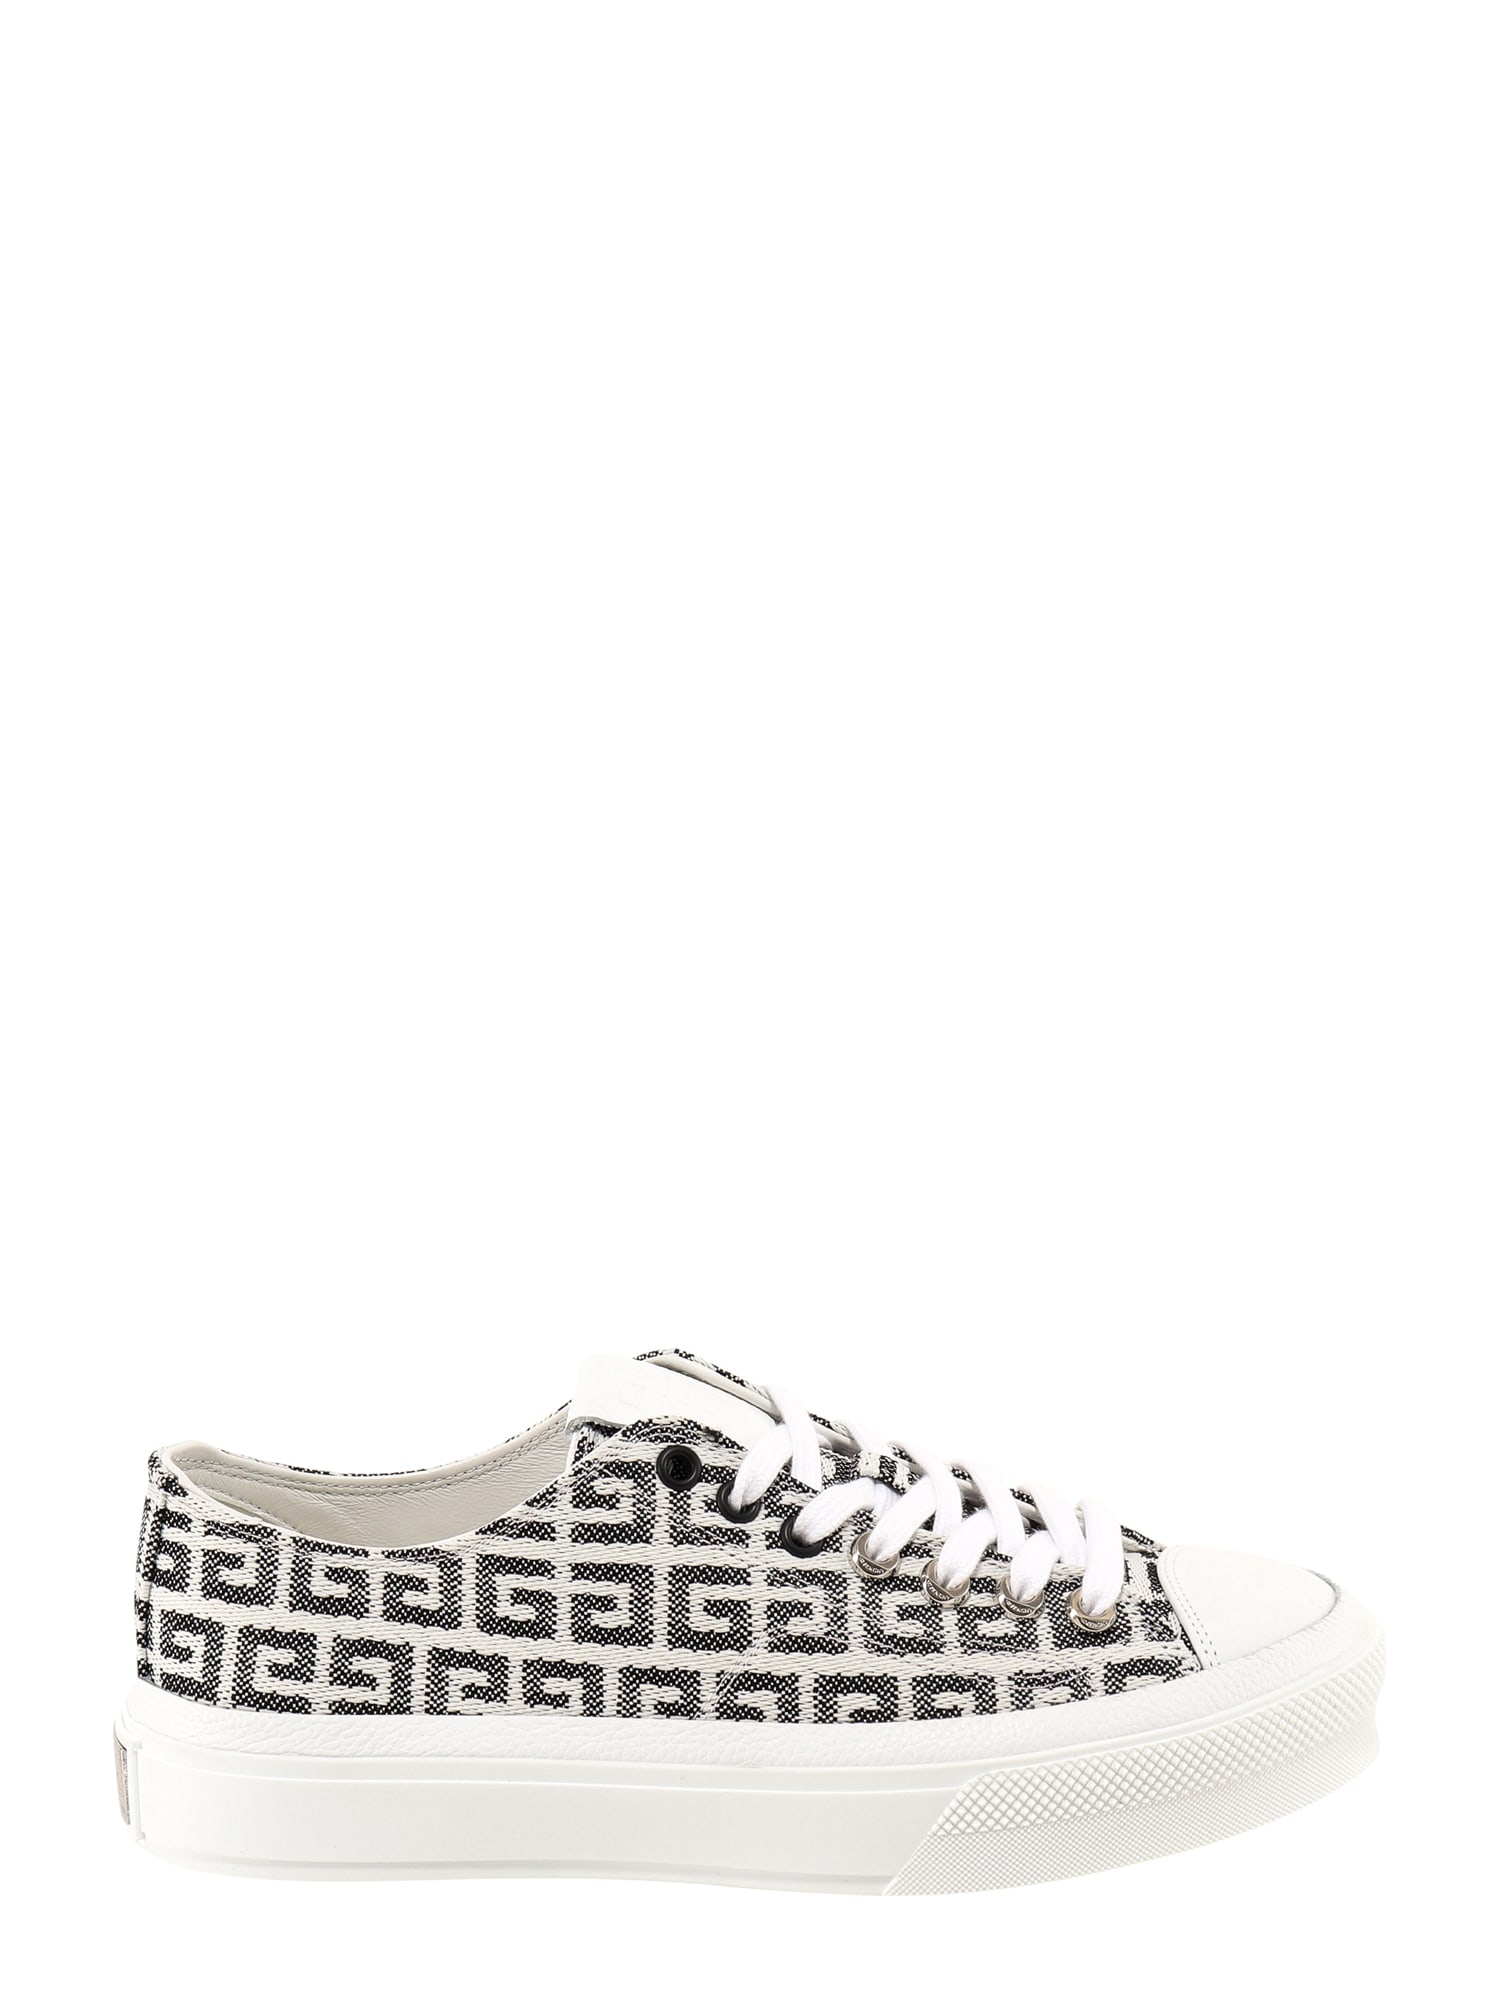 Buy Givenchy City Sneakers online, shop Givenchy shoes with free shipping